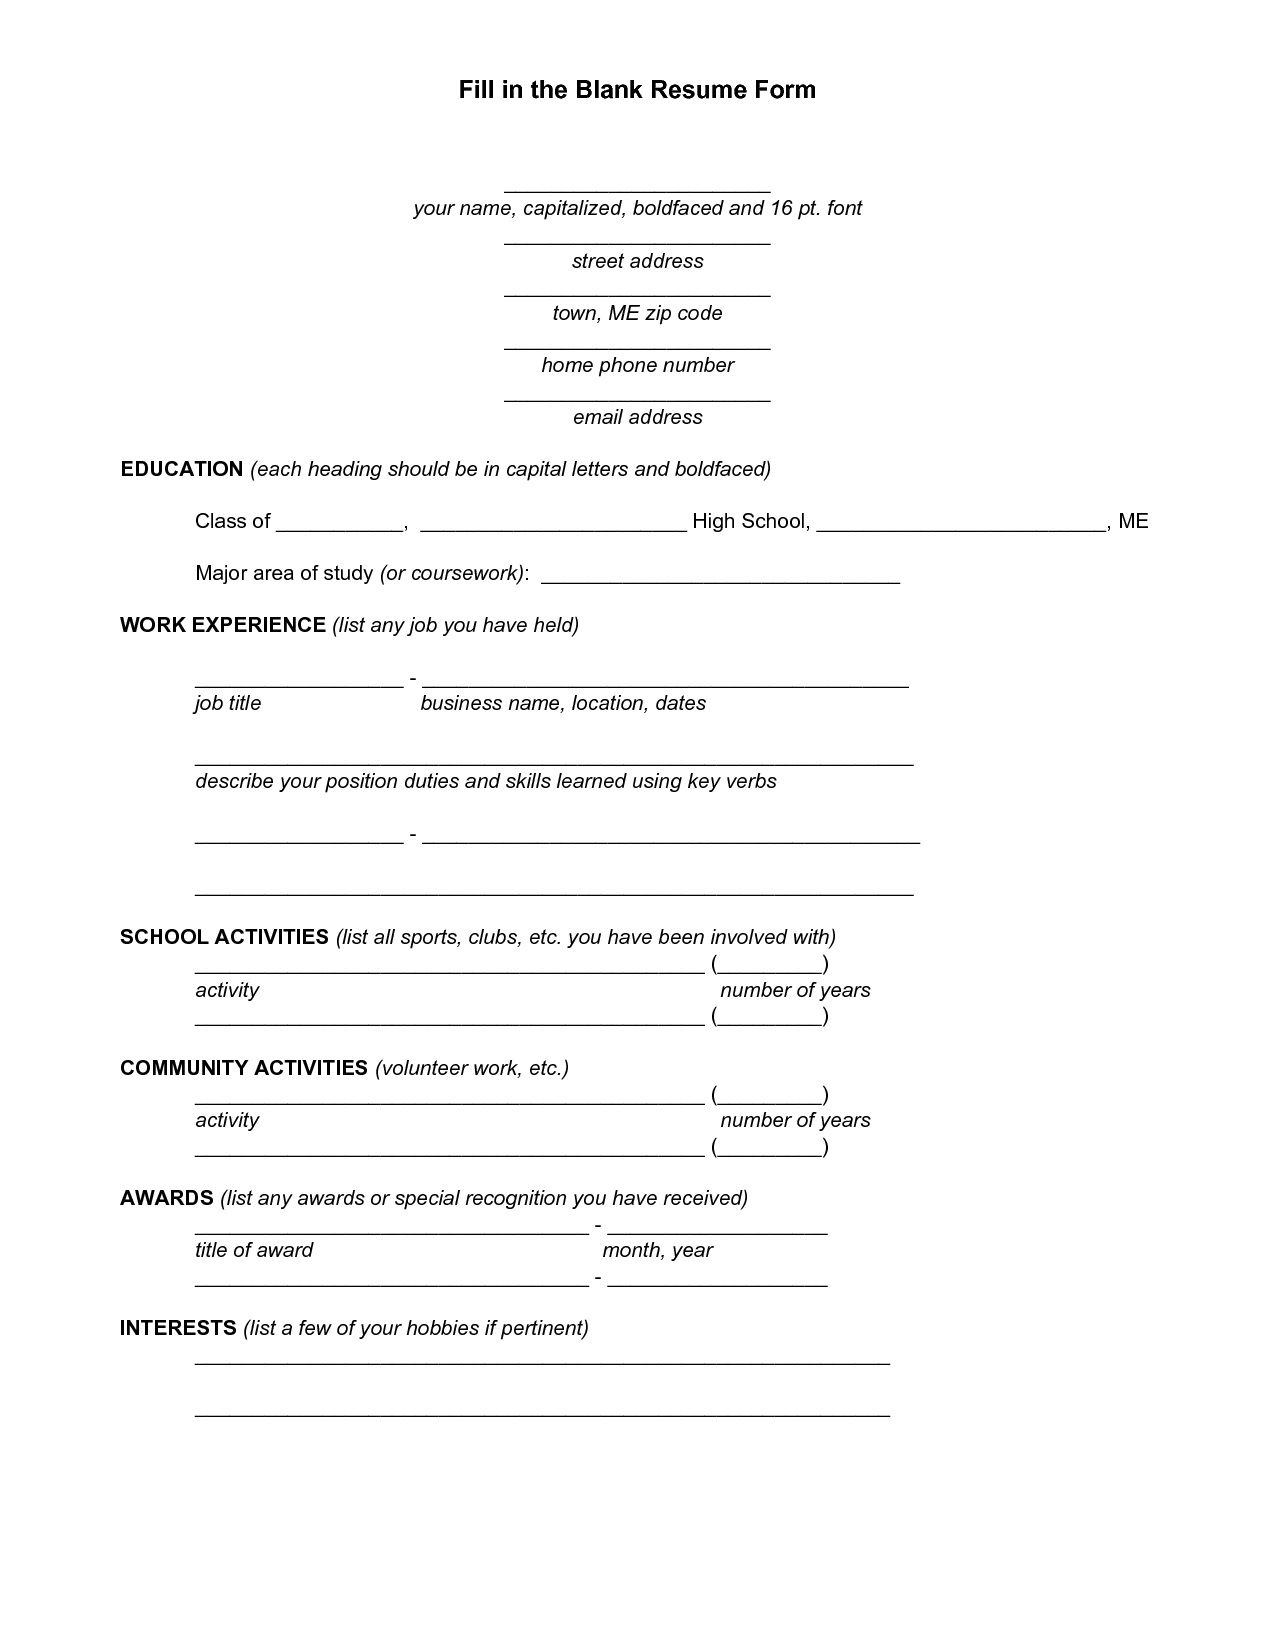 printable resume templates blank resume form we provide as reference to make 24080 | 63ed02c33f75b52317ac5f22dc91ef4c